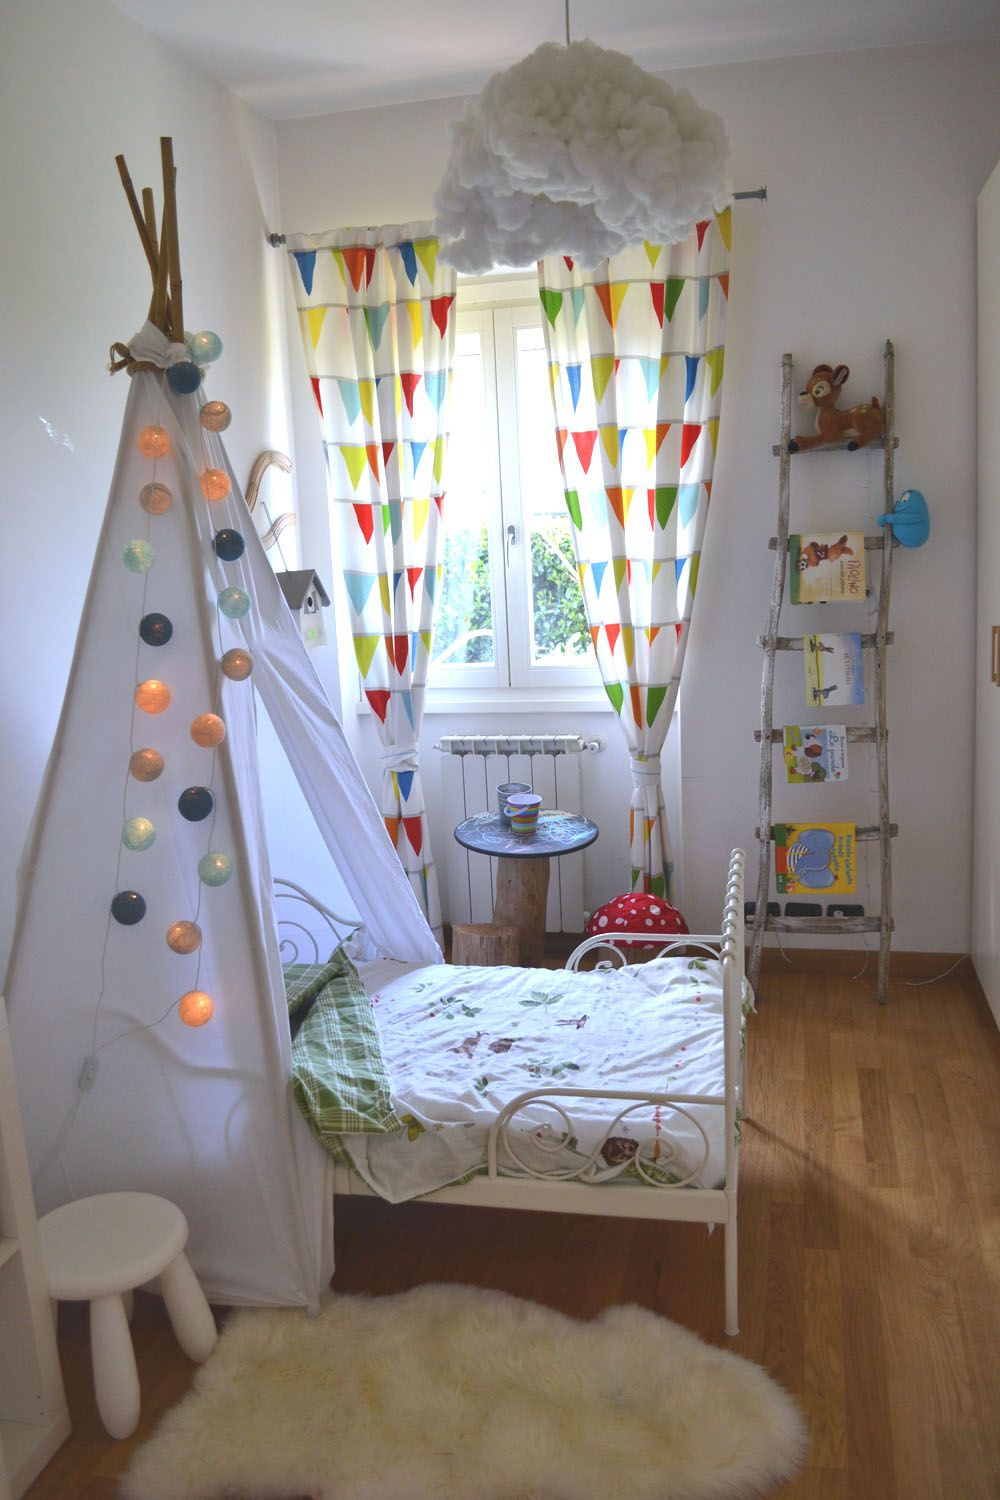 Teepee Toddler Bed Need To Find Toddler Bed With Rails